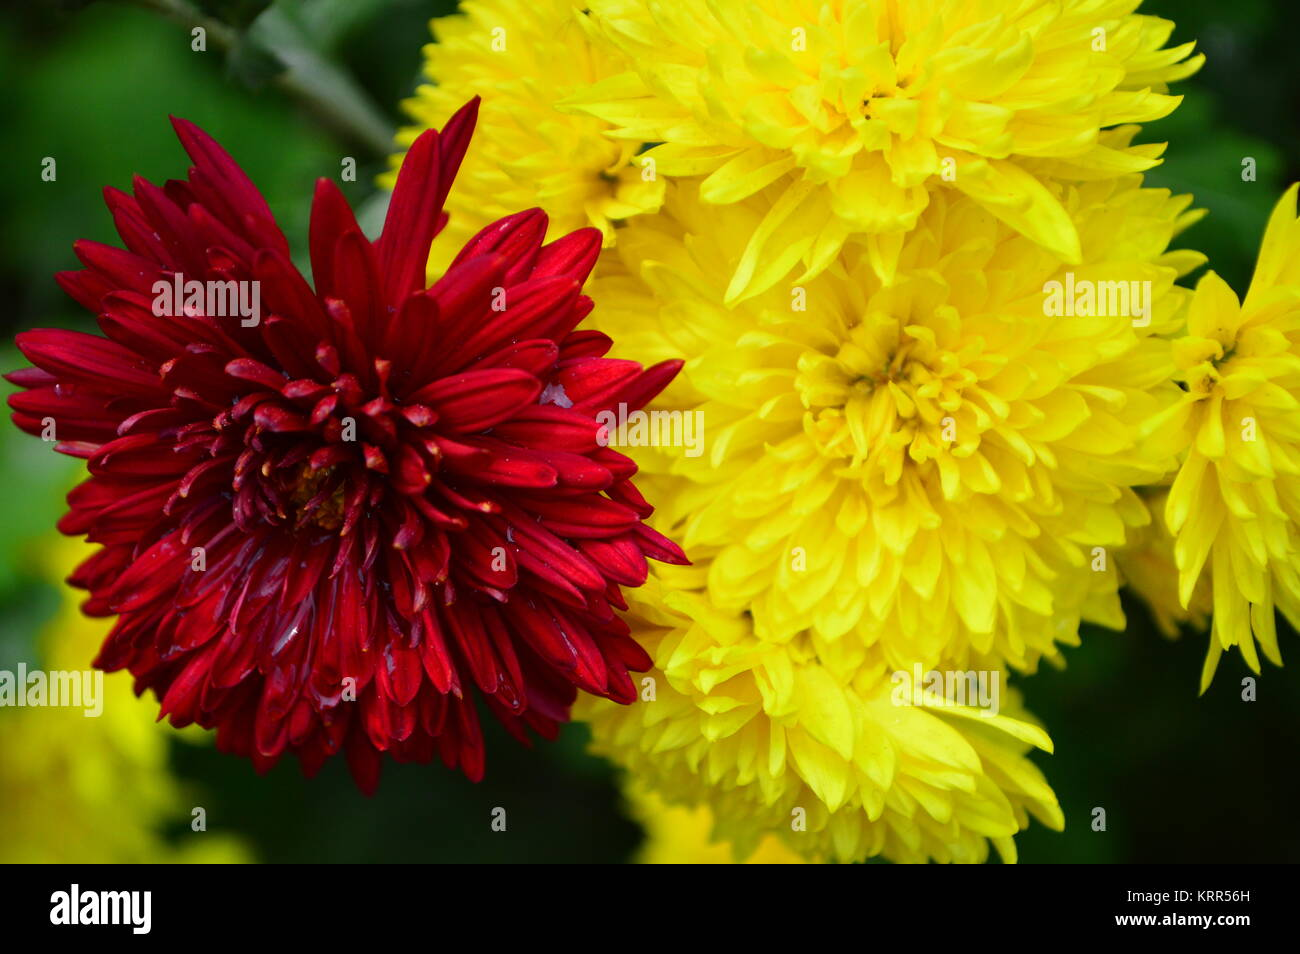 Red And Yellow Chrysanthemum Flowers Bloom Stock Photos Red And